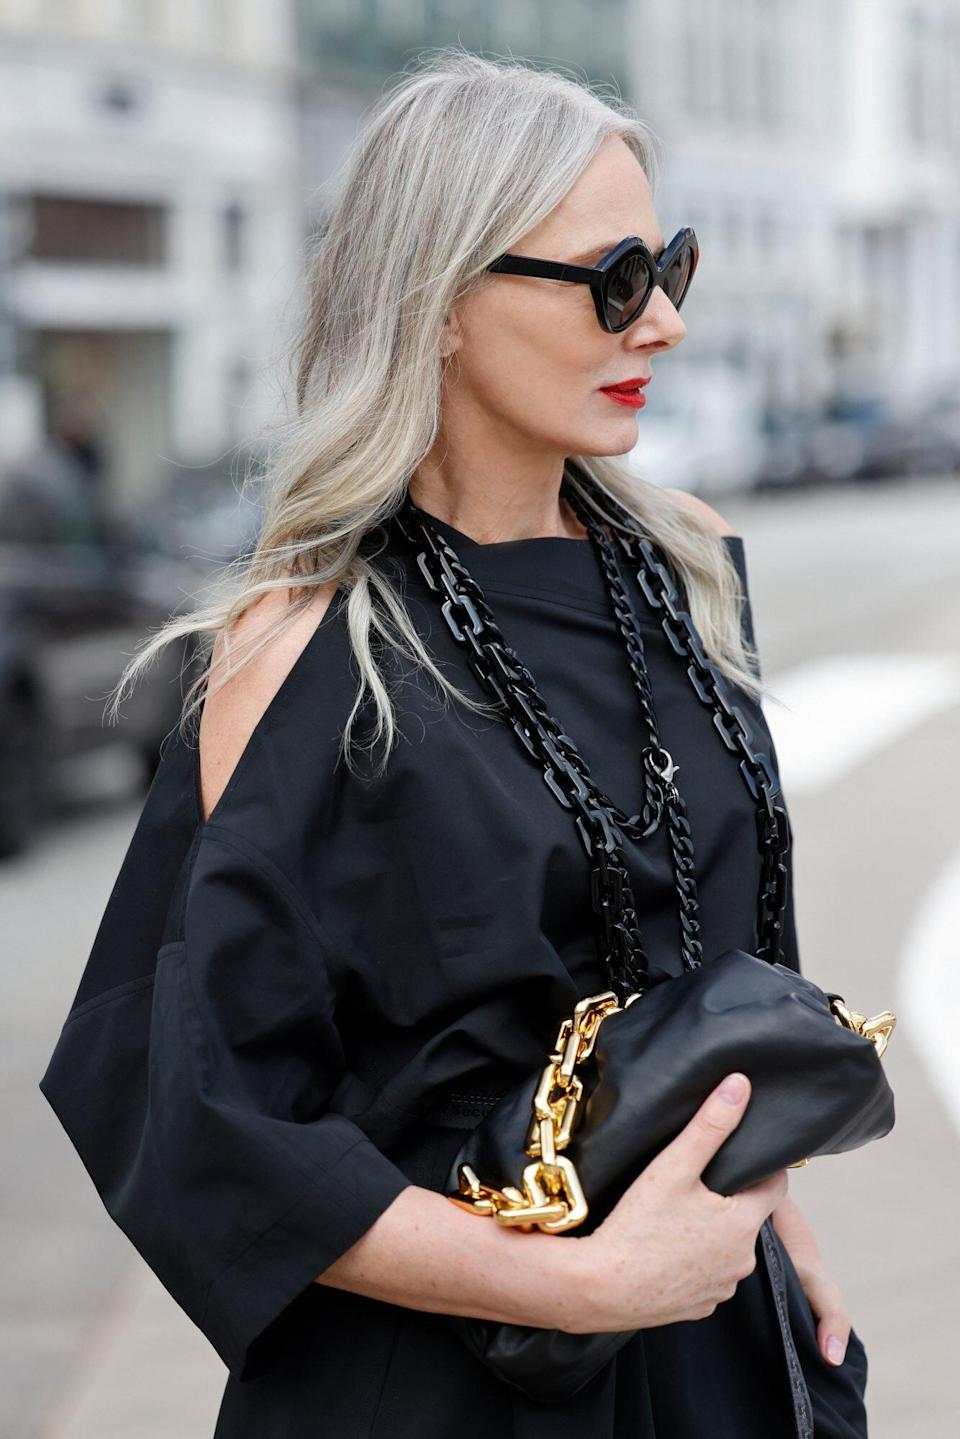 Shoppers With Gray and White Hair Credit Their Glossy